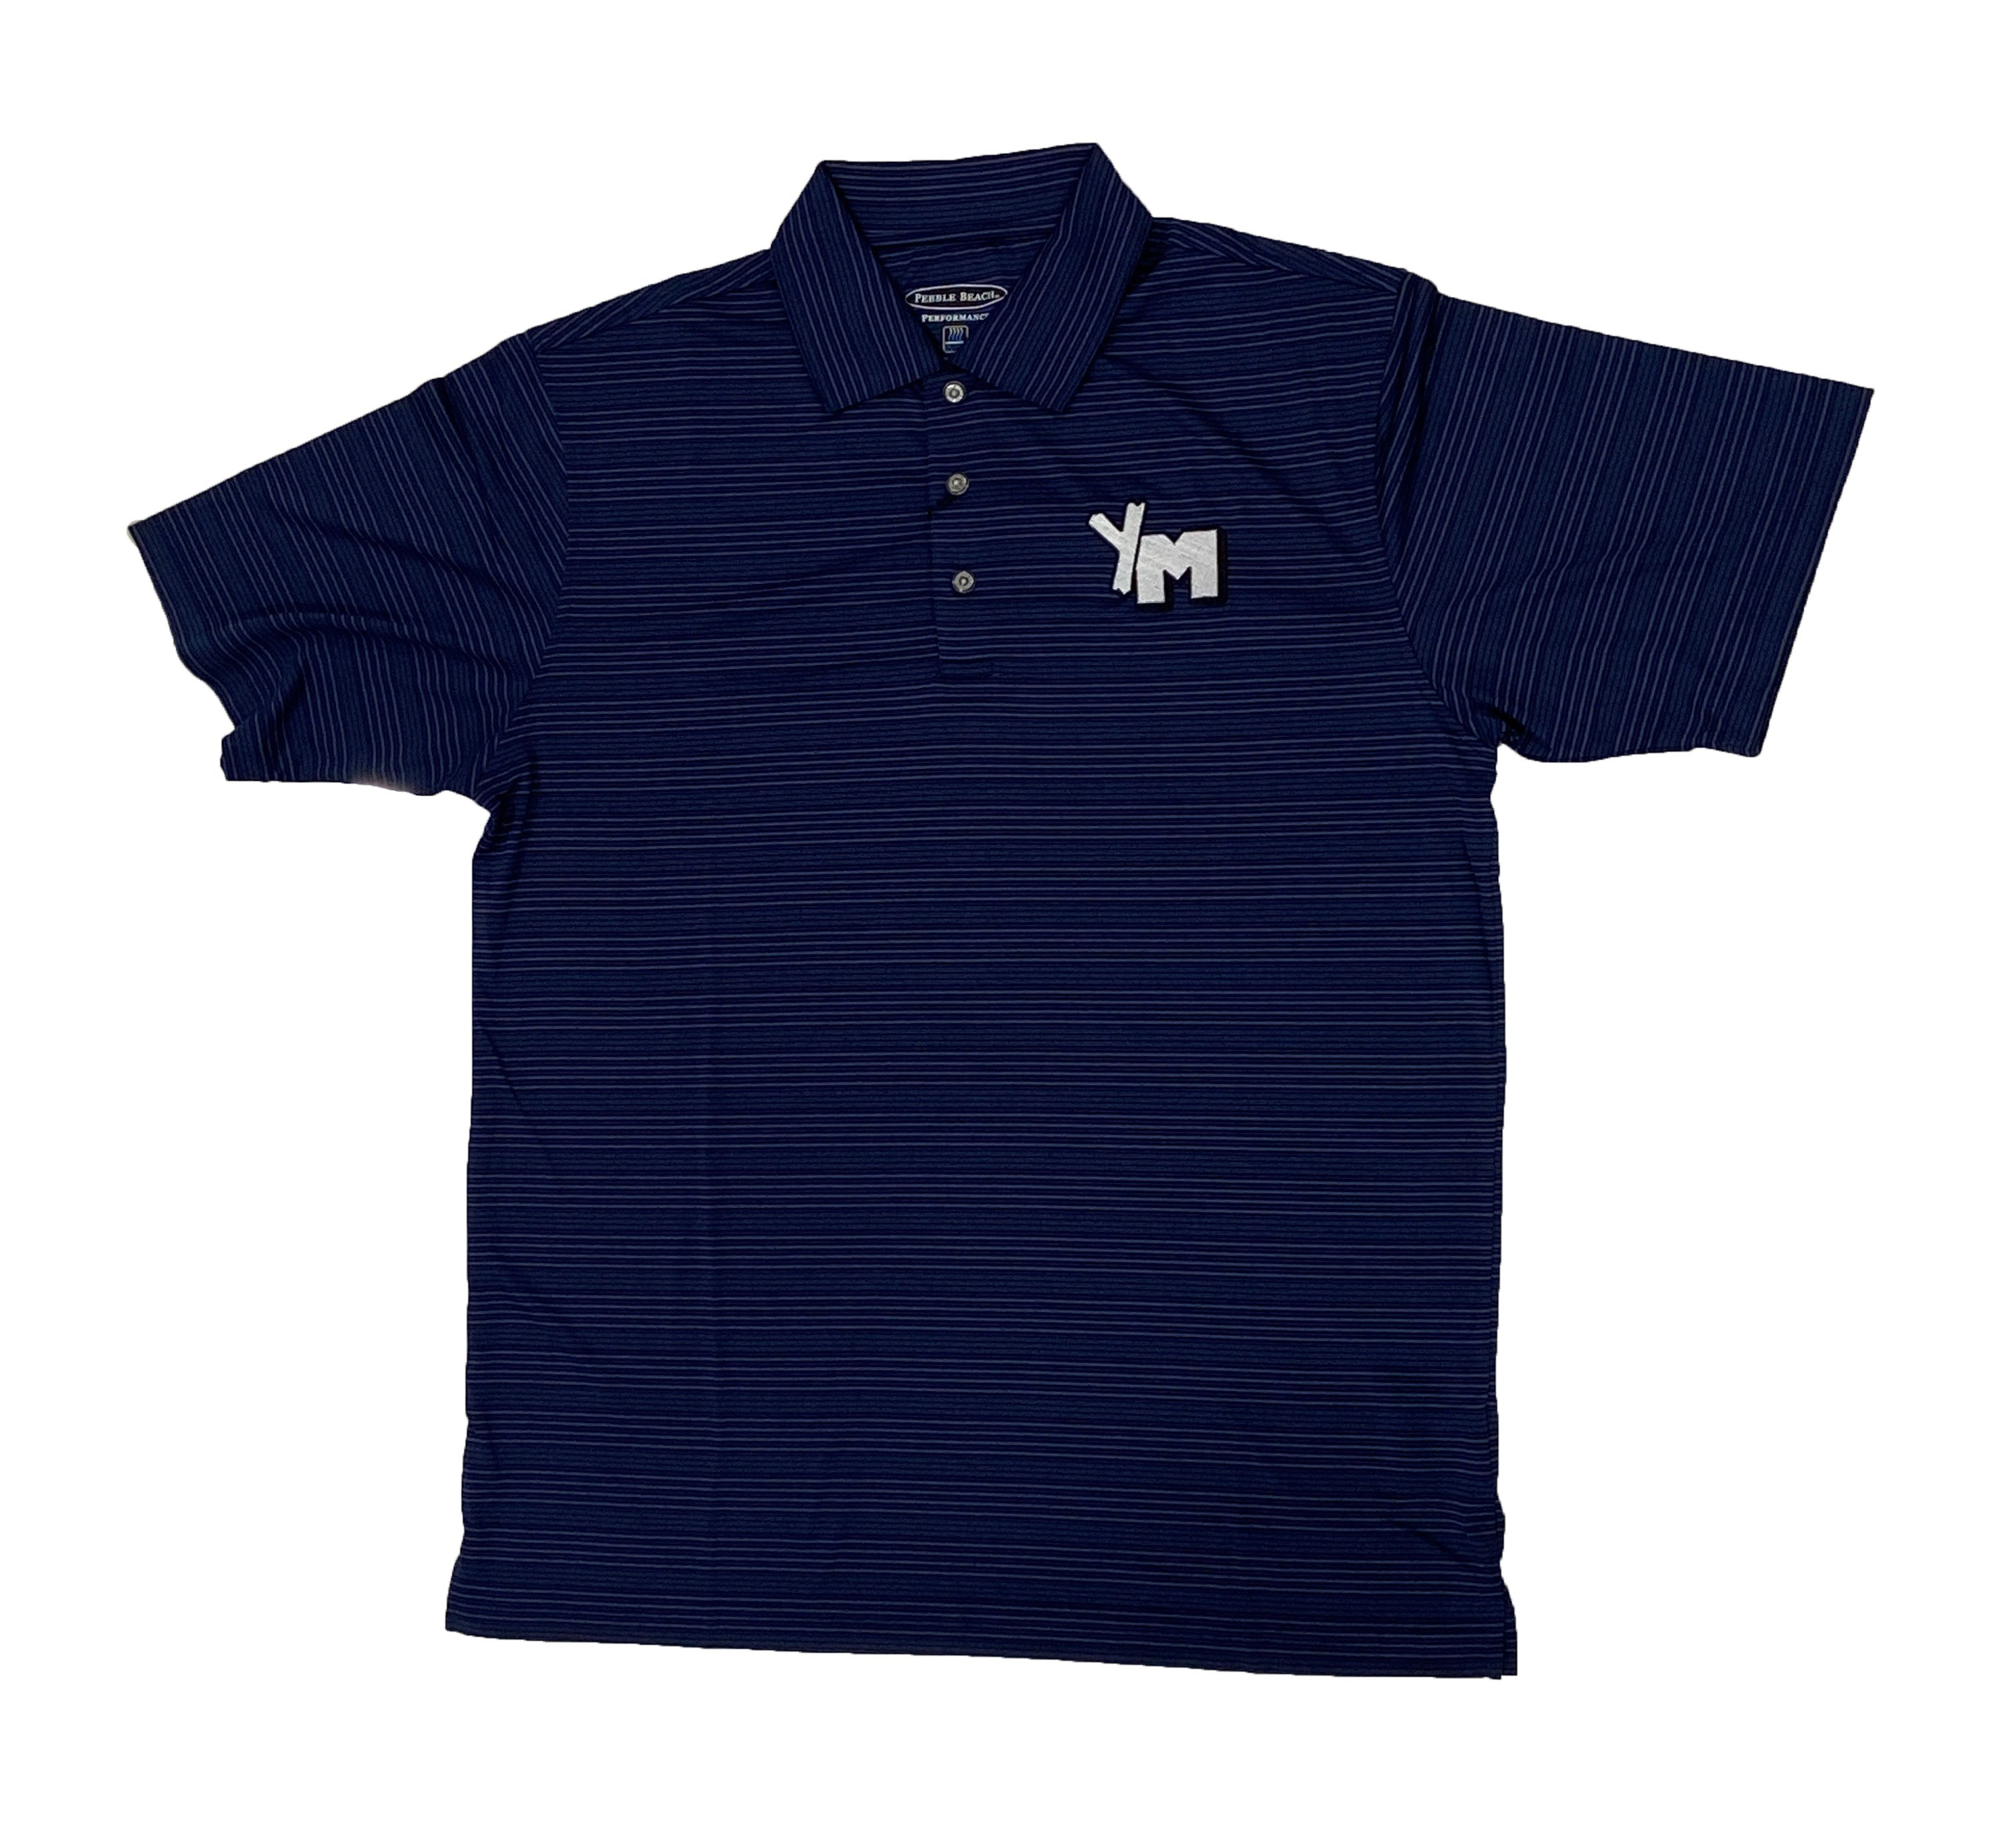 Golf YM Polo's